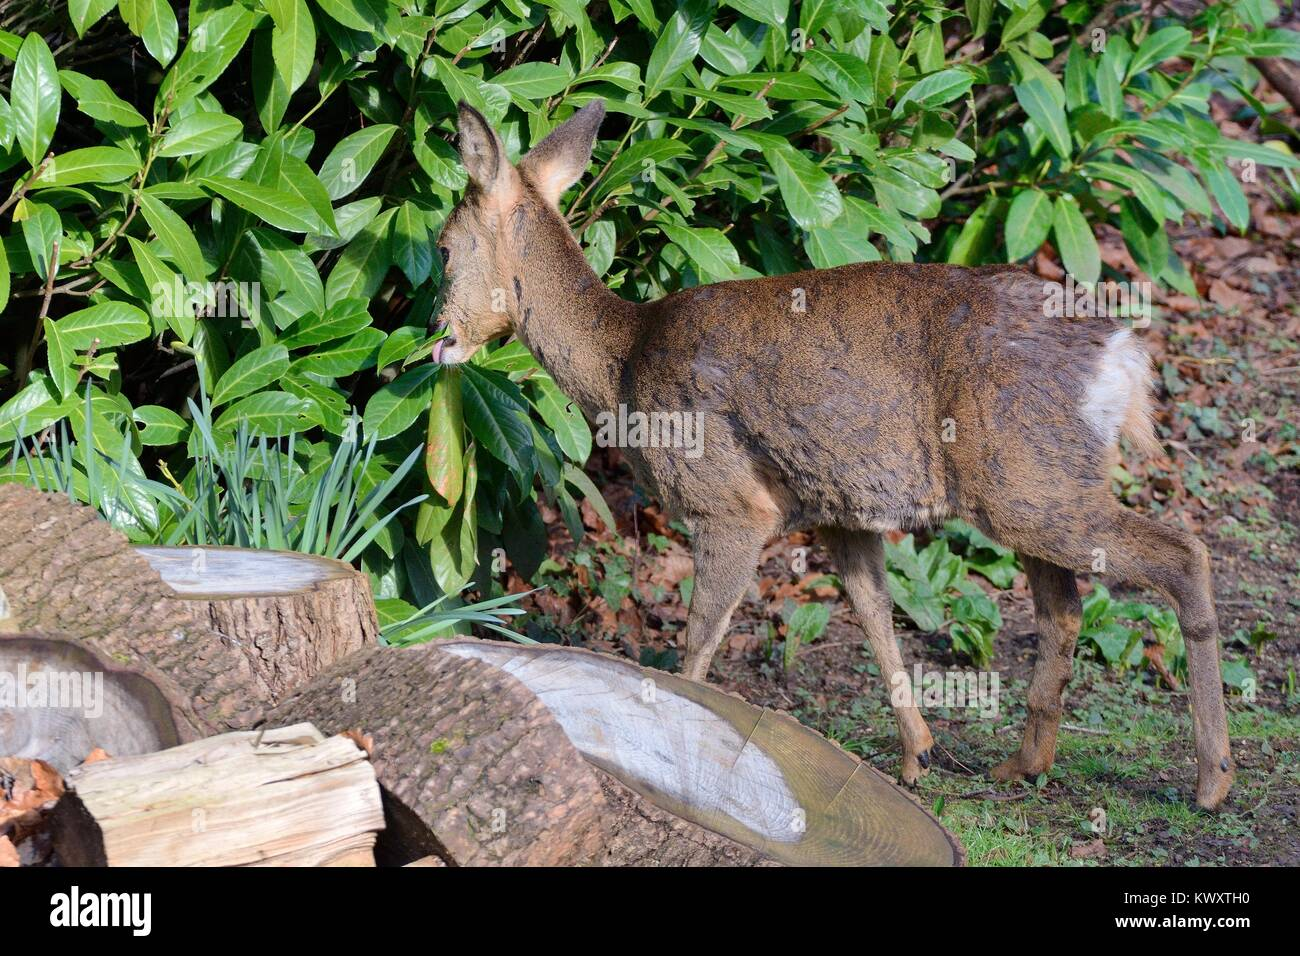 Roe deer (Capreolus capreolus) doe visiting a garden in morning sunlight, grazing a Cherry laurel bush (Prunus laurocerasus) - Stock Image